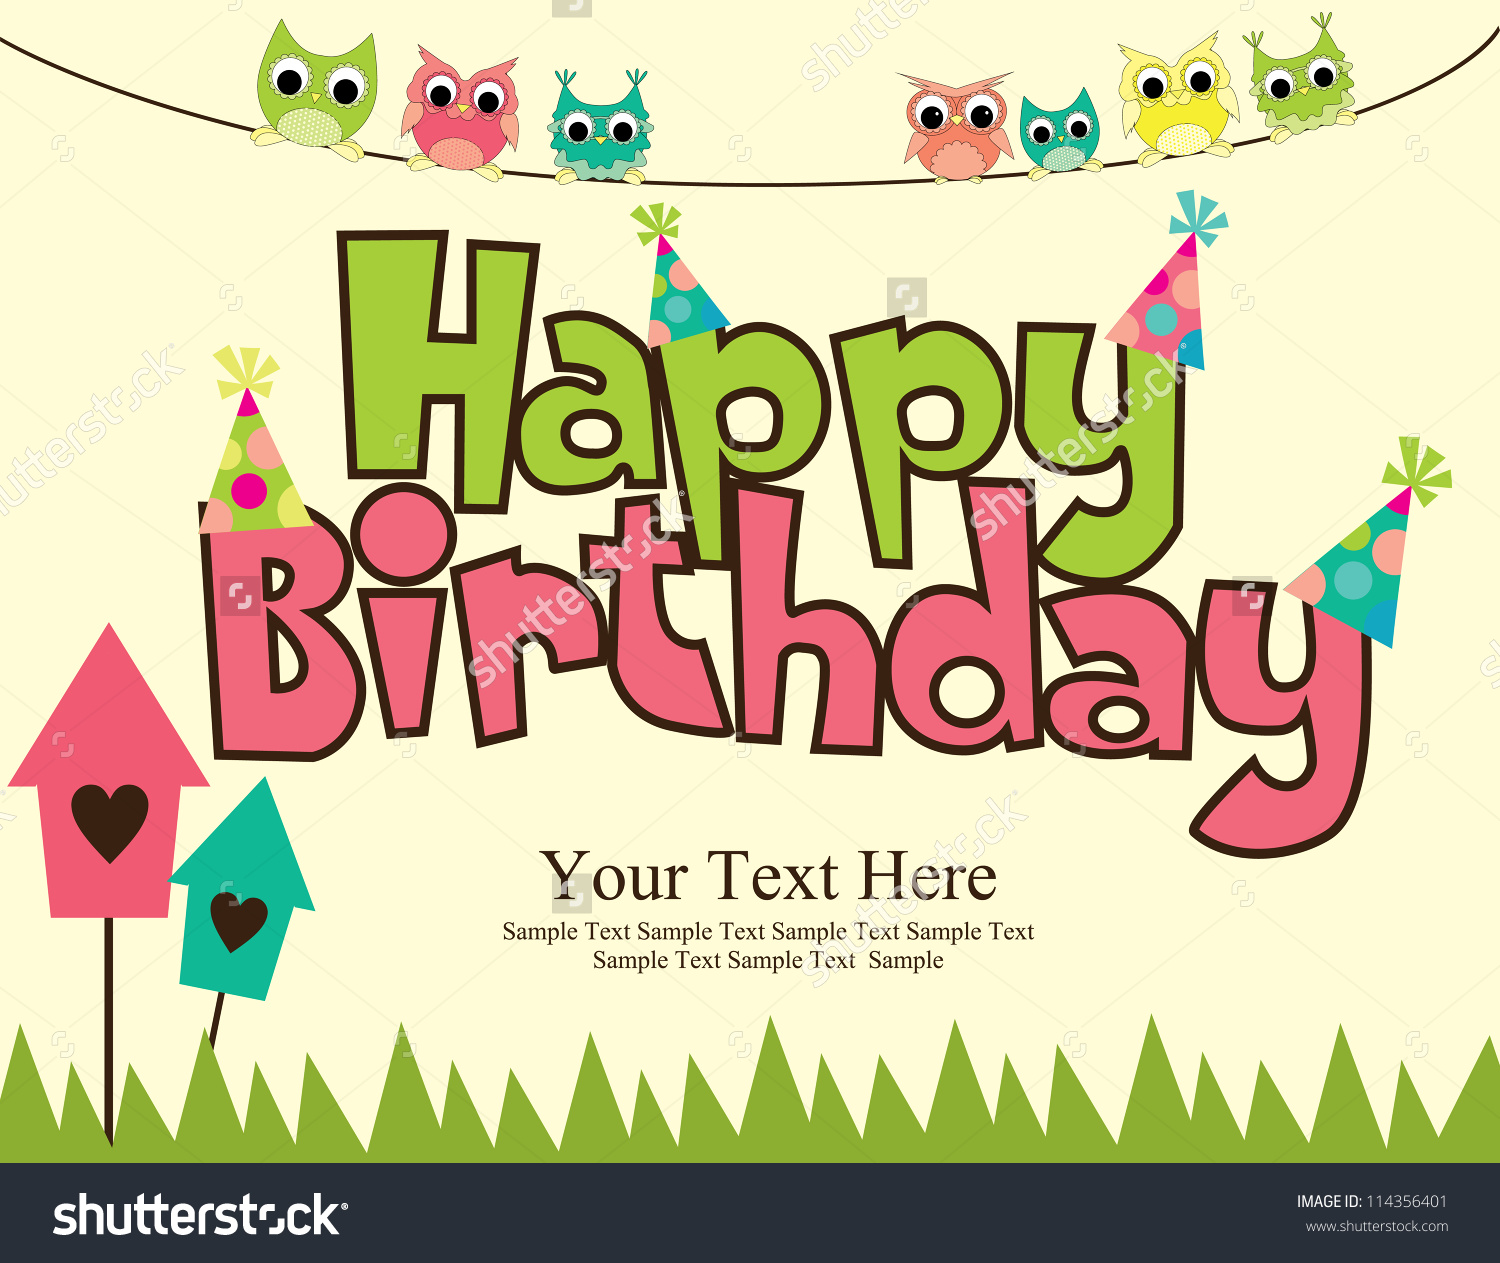 happy birthday card design template ; designs-for-birthday-cards-vector-illustraton-completing-simple-elegant-stunning-model-looked-so-sweet-also-classic-aslo-cute-owl-themed